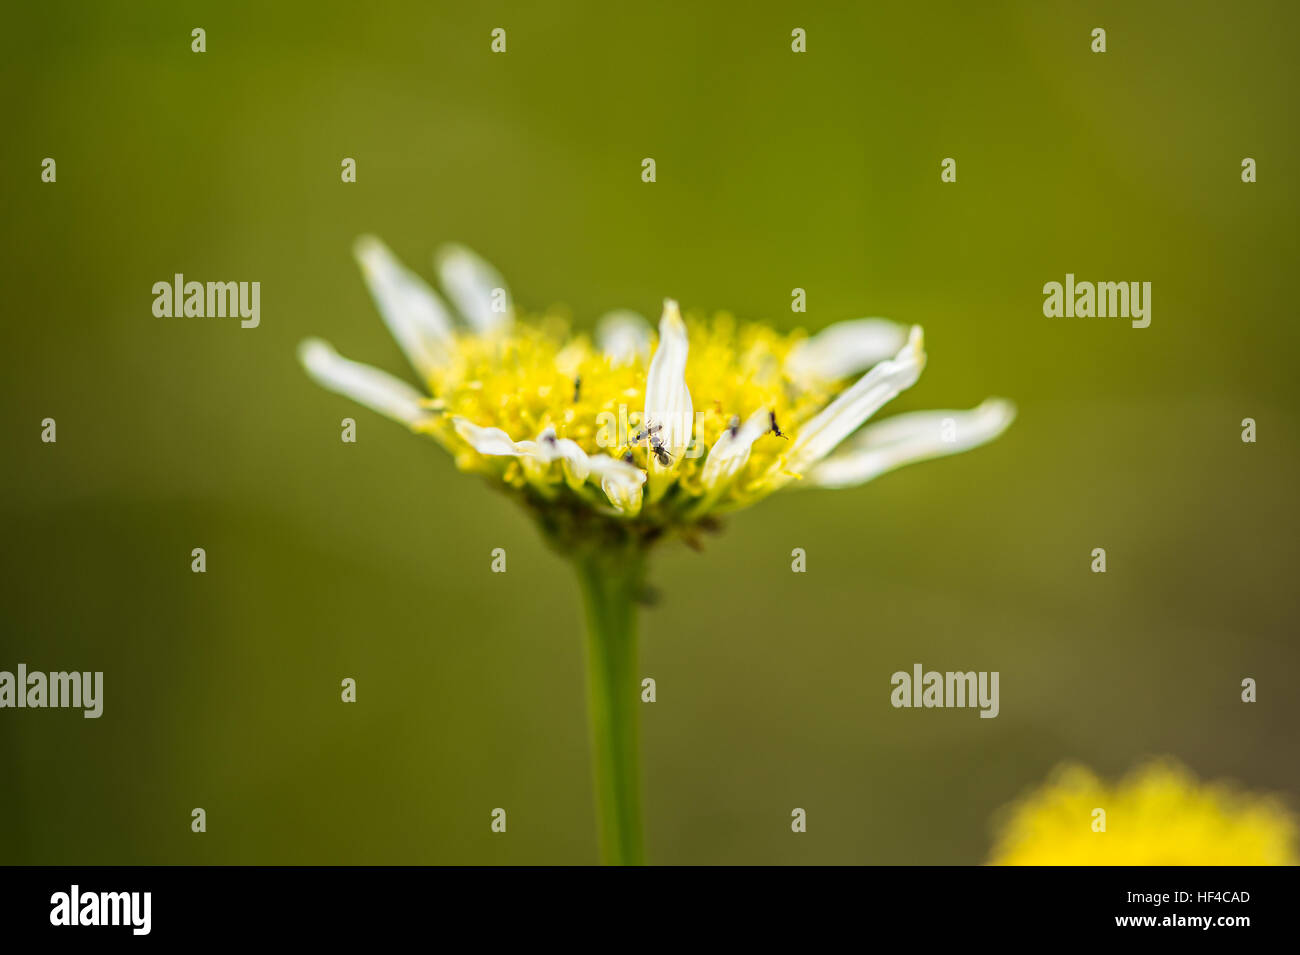 Tiny Bugs On A Small White And Yellow Flower Close Up Stock Photo